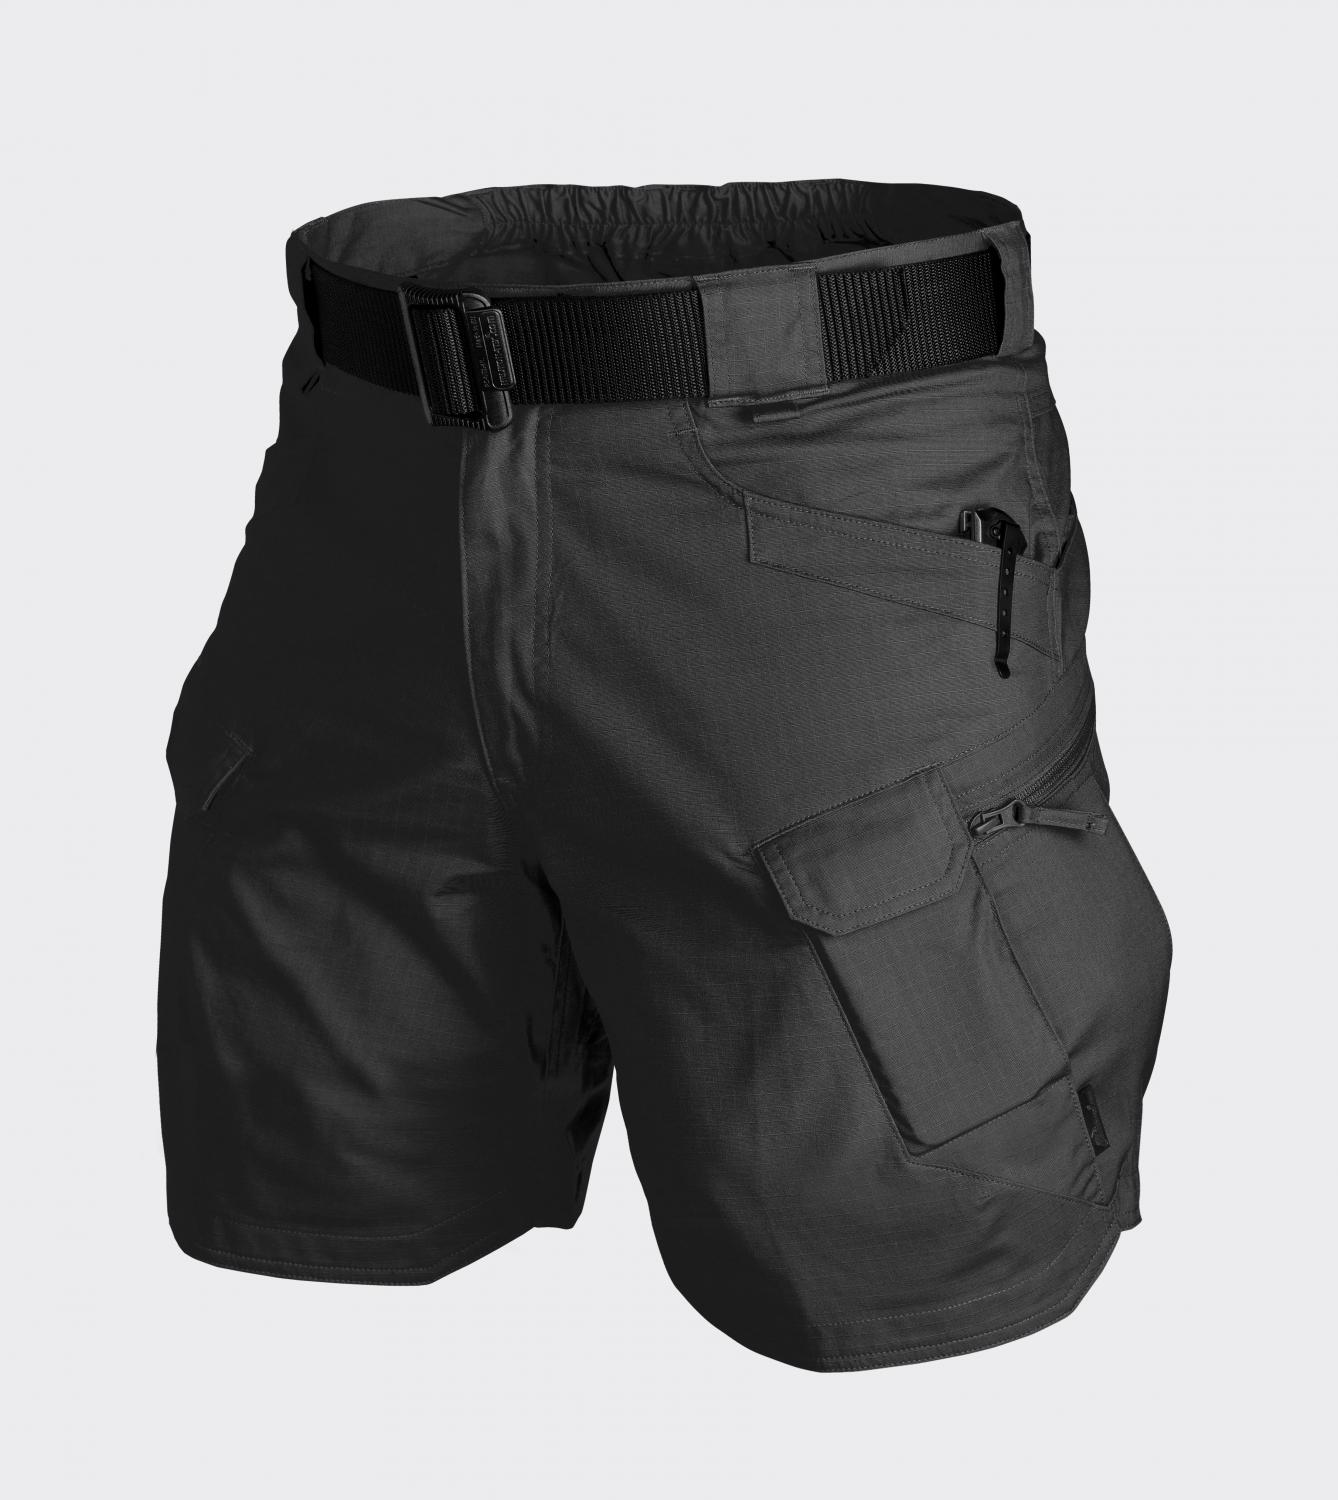 URBAN TACTICAL SHORTS® 8.5 - PolyCotton Ripstop Black